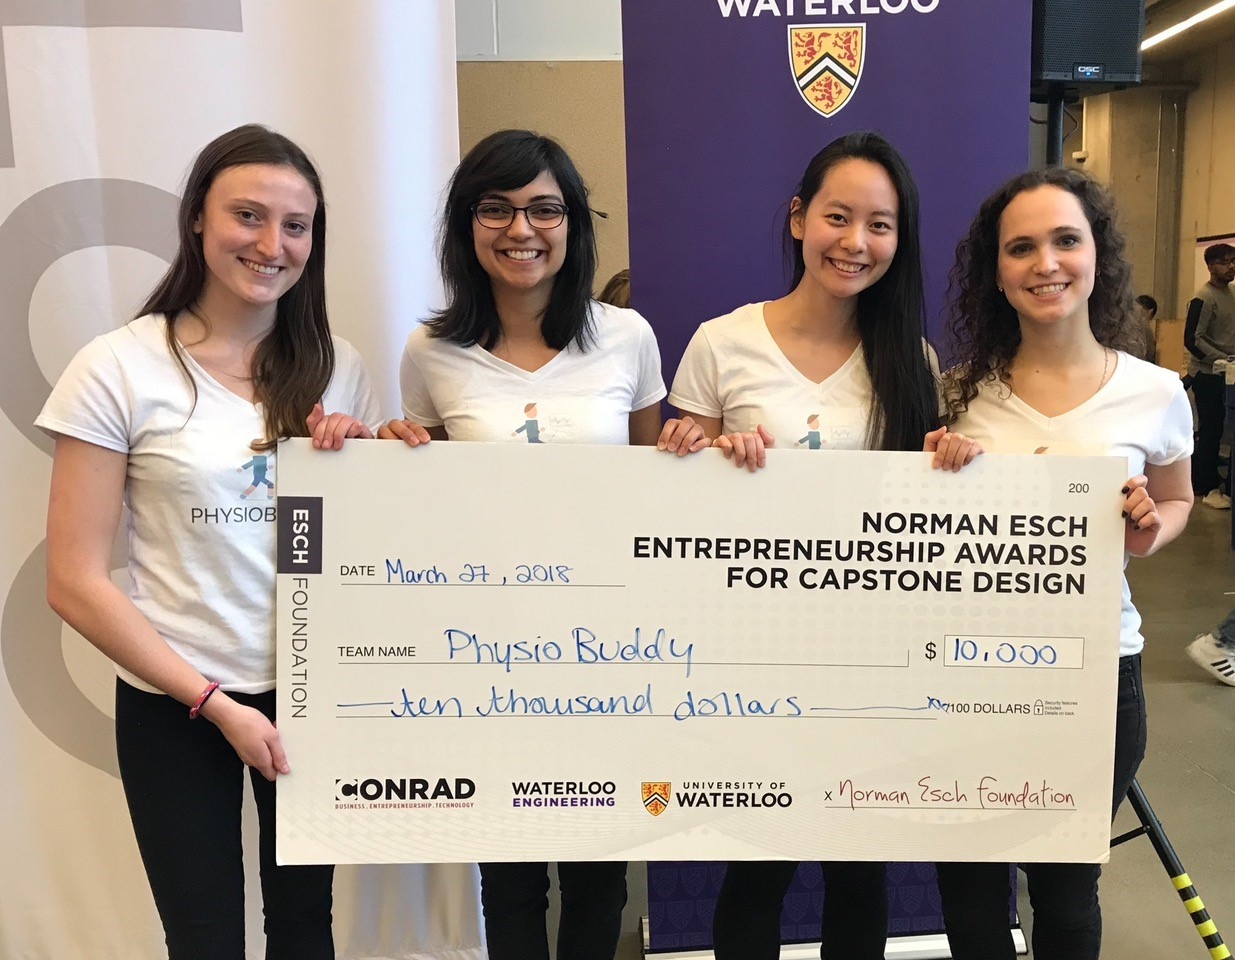 Norman Esch Entrepreneurship Awards For Capstone Design Systems Design Engineering University Of Waterloo